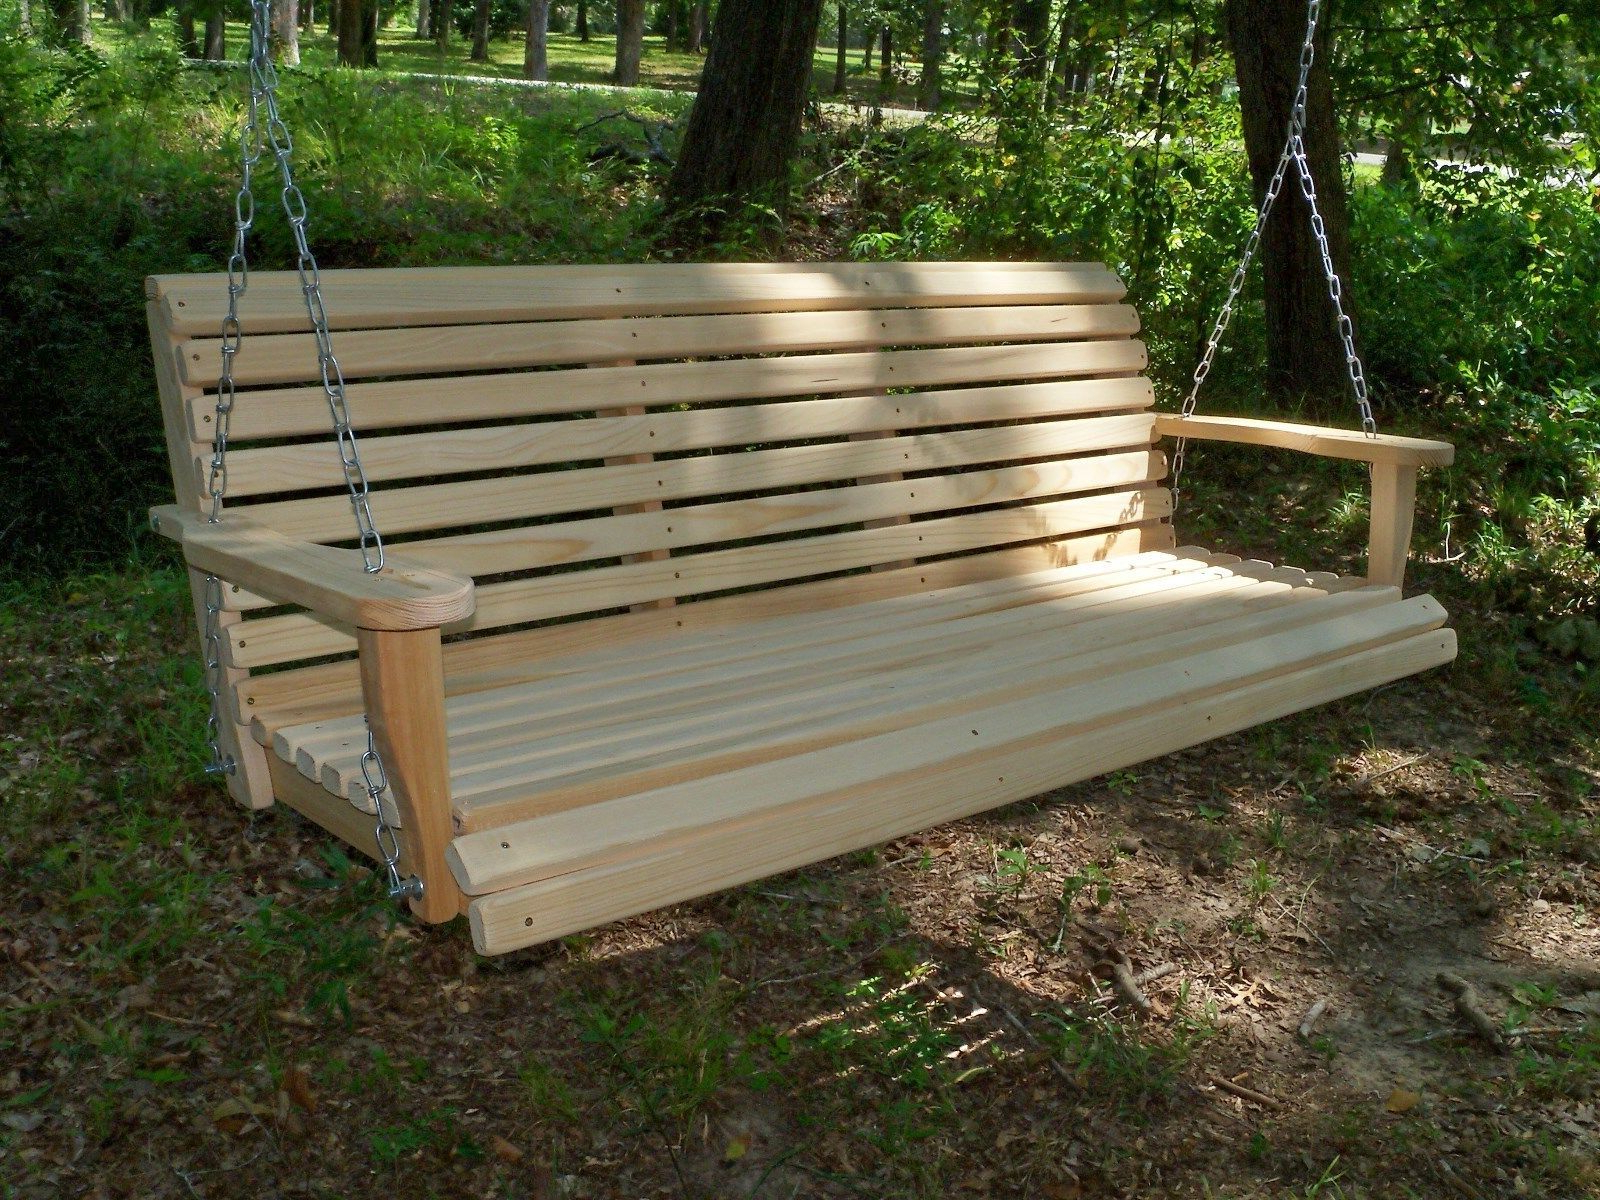 5 Ft Cedar Swings With Springs Regarding Well Liked Details About 5Ft Reg Cypress Wood Wooden Porch Bench Swing (Gallery 14 of 30)